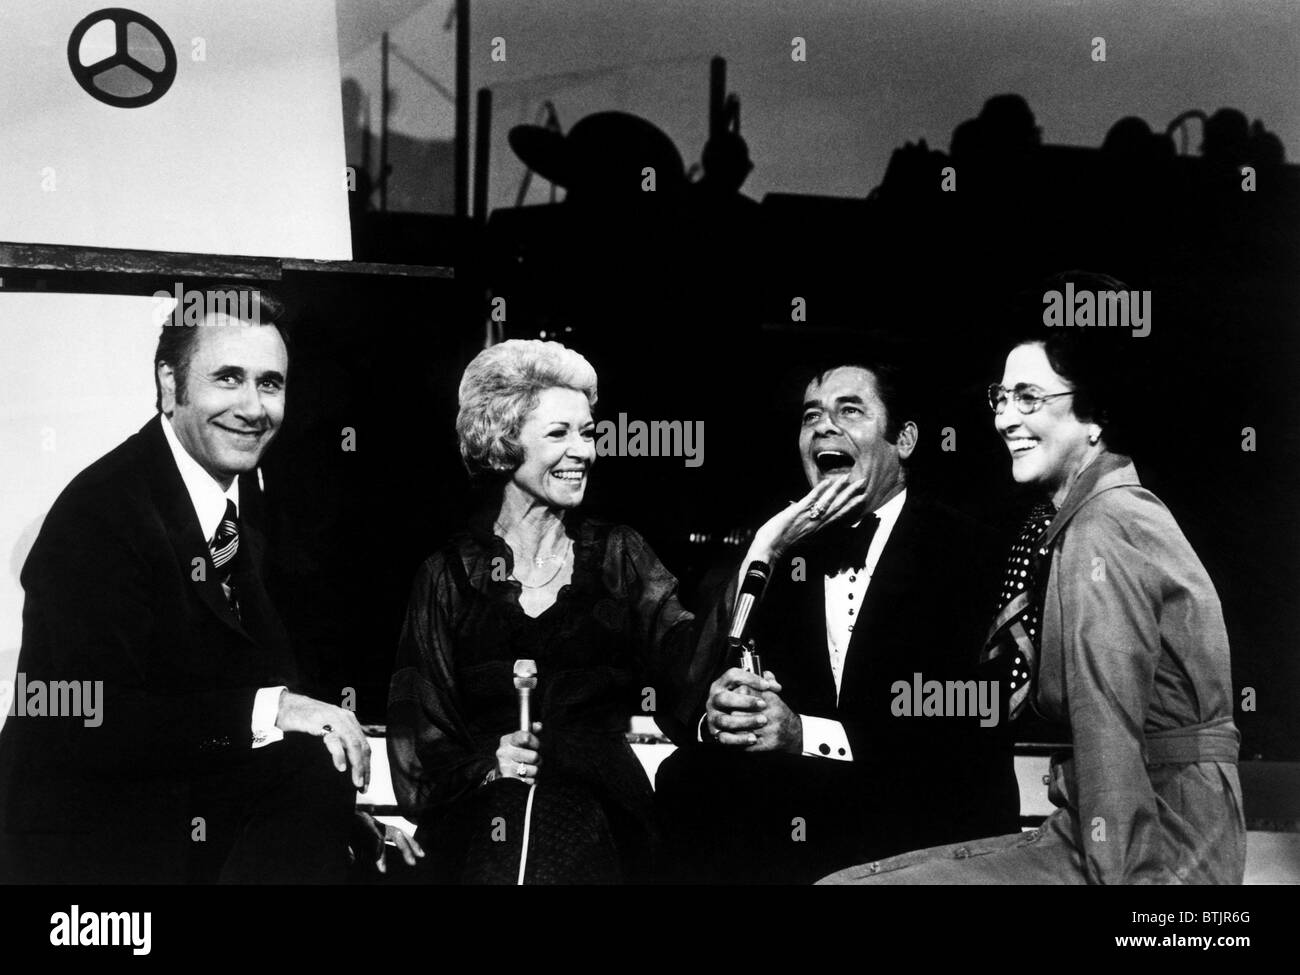 Oral Roberts (far left), Jerry Lewis (second from right), Evelyn Roberts (far right), on the television special Stock Photo